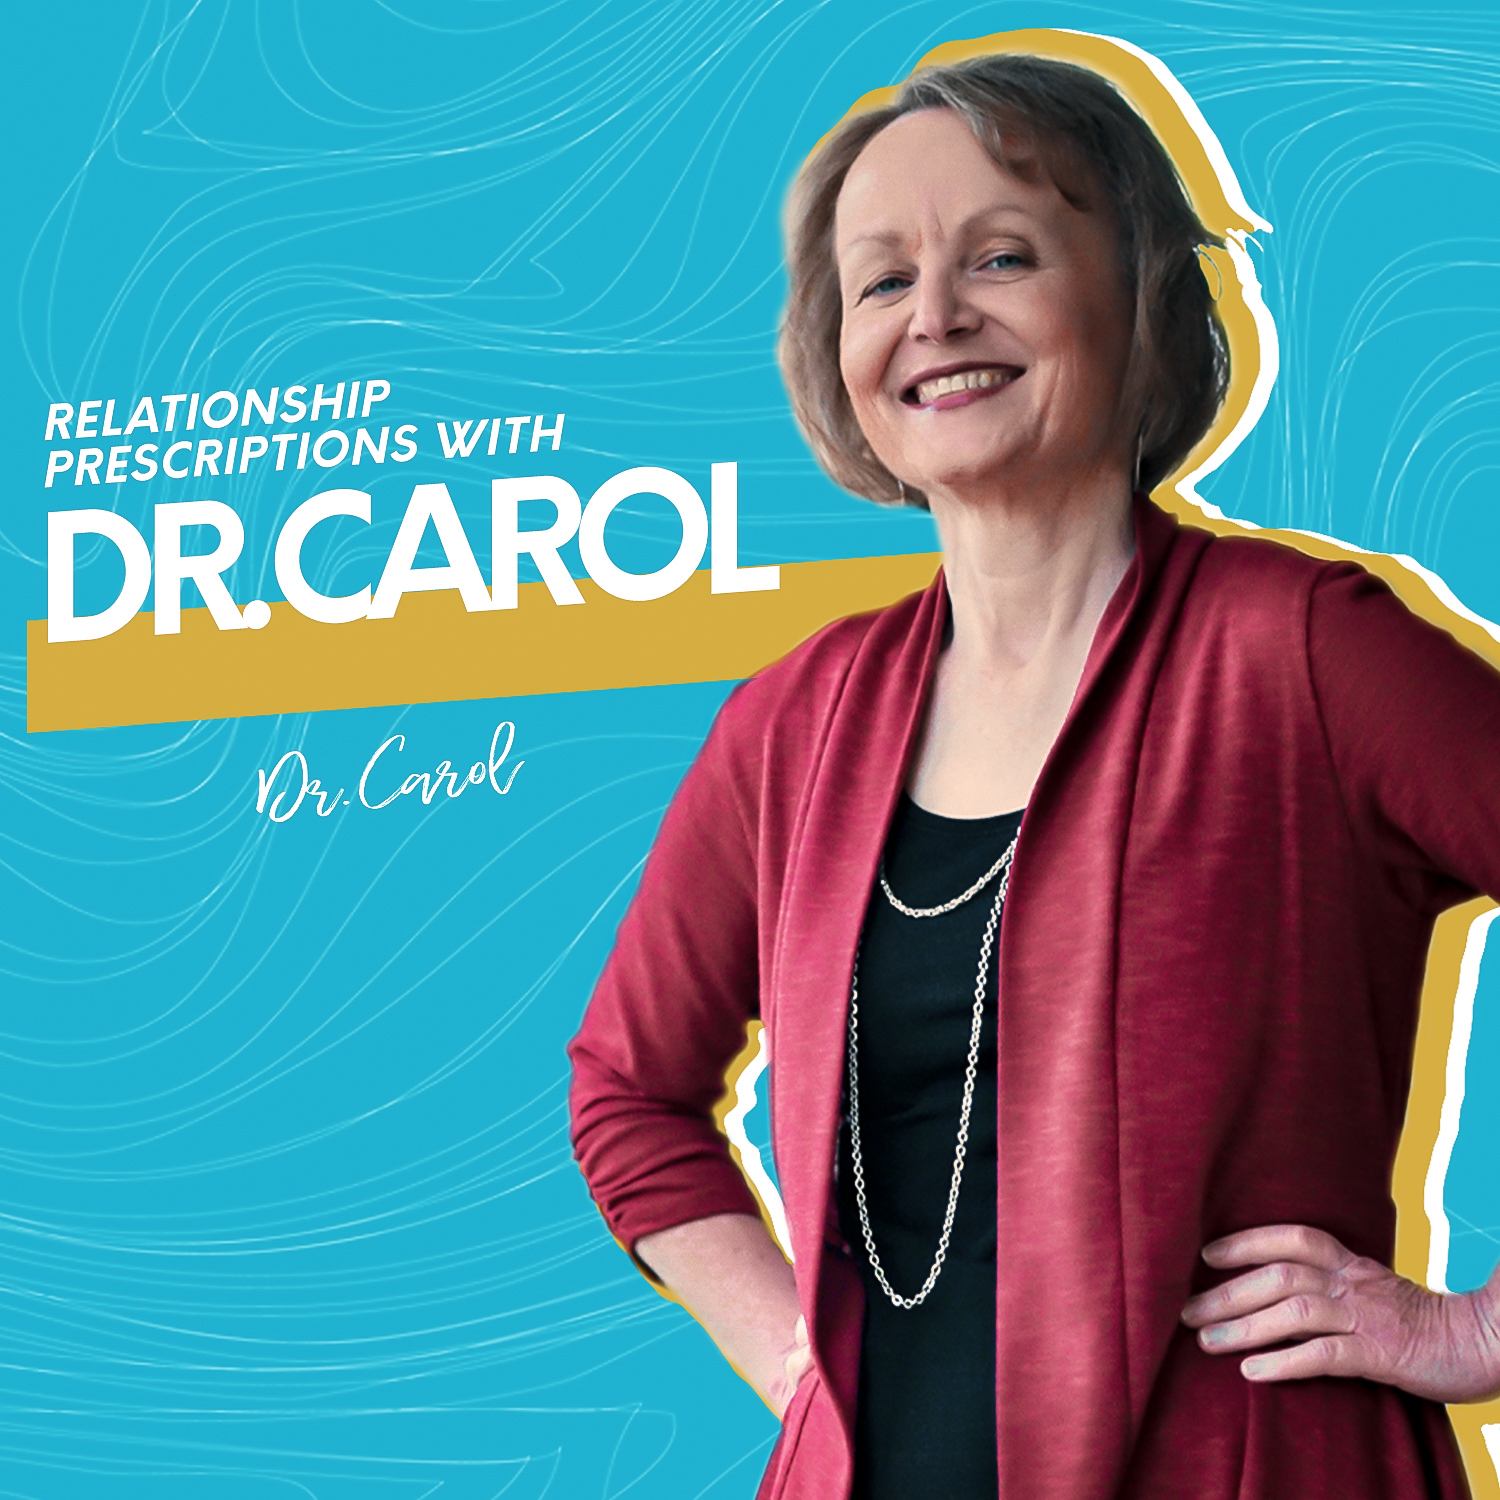 Relationship Prescriptions with Dr. Carol - Undoing the Lies Men and Women Believe About Power, Sex, and God